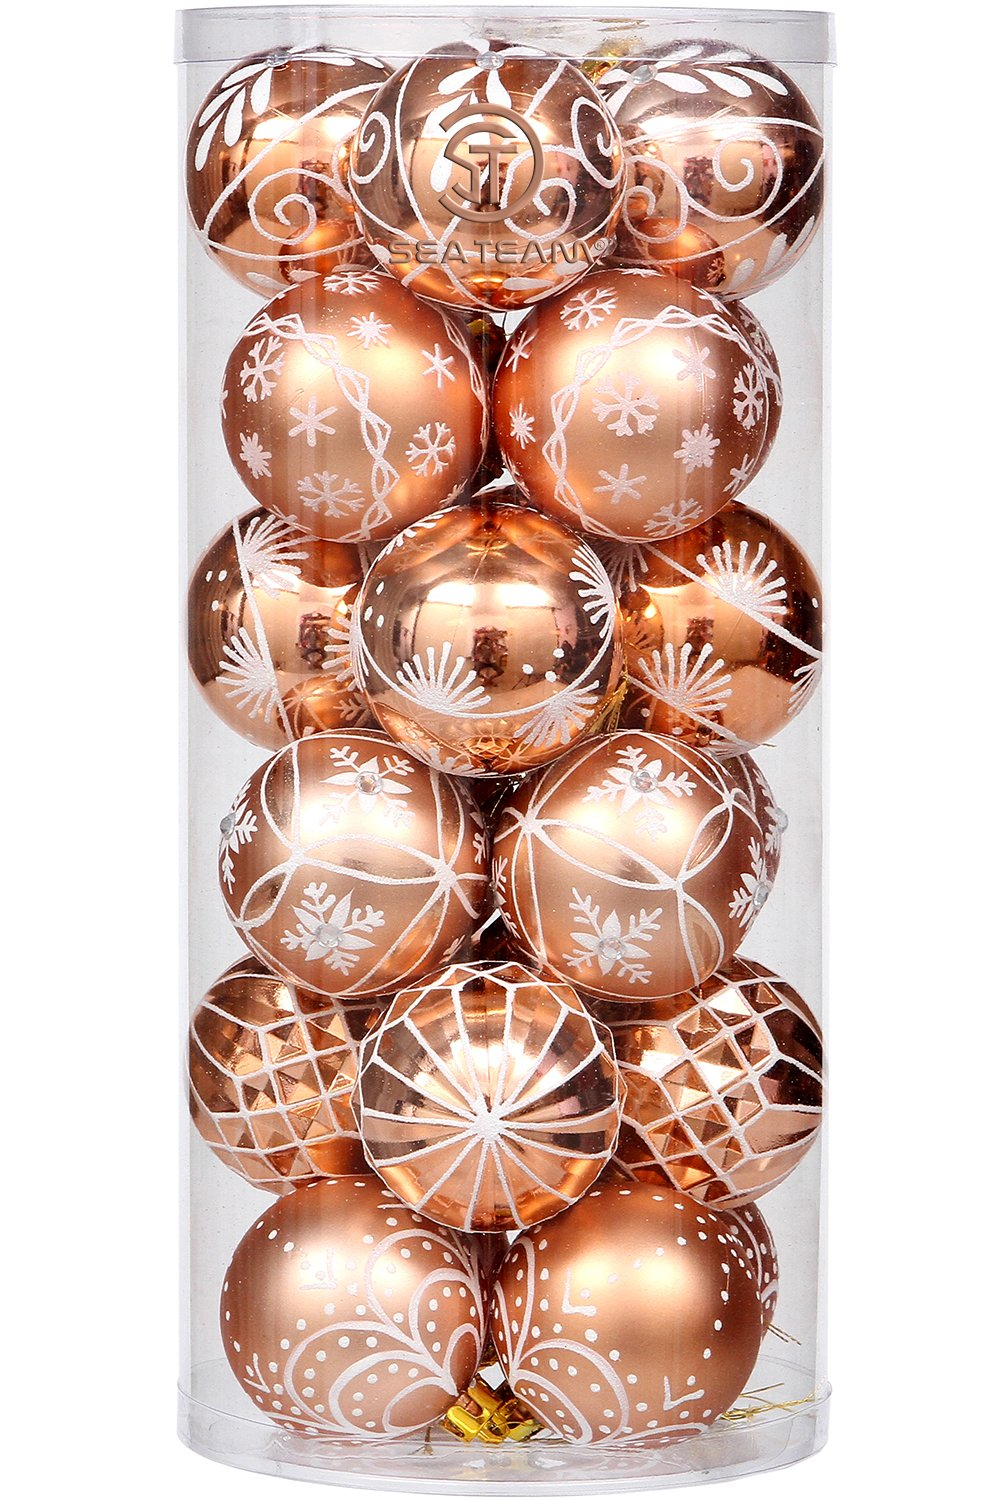 Sea Team 60mm/2.36'' Delicate Painting & Glittering Christmas Tree Pendants Shatterproof Hanging Christmas Ball Ornaments Set - 24 Pieces (COPPER)